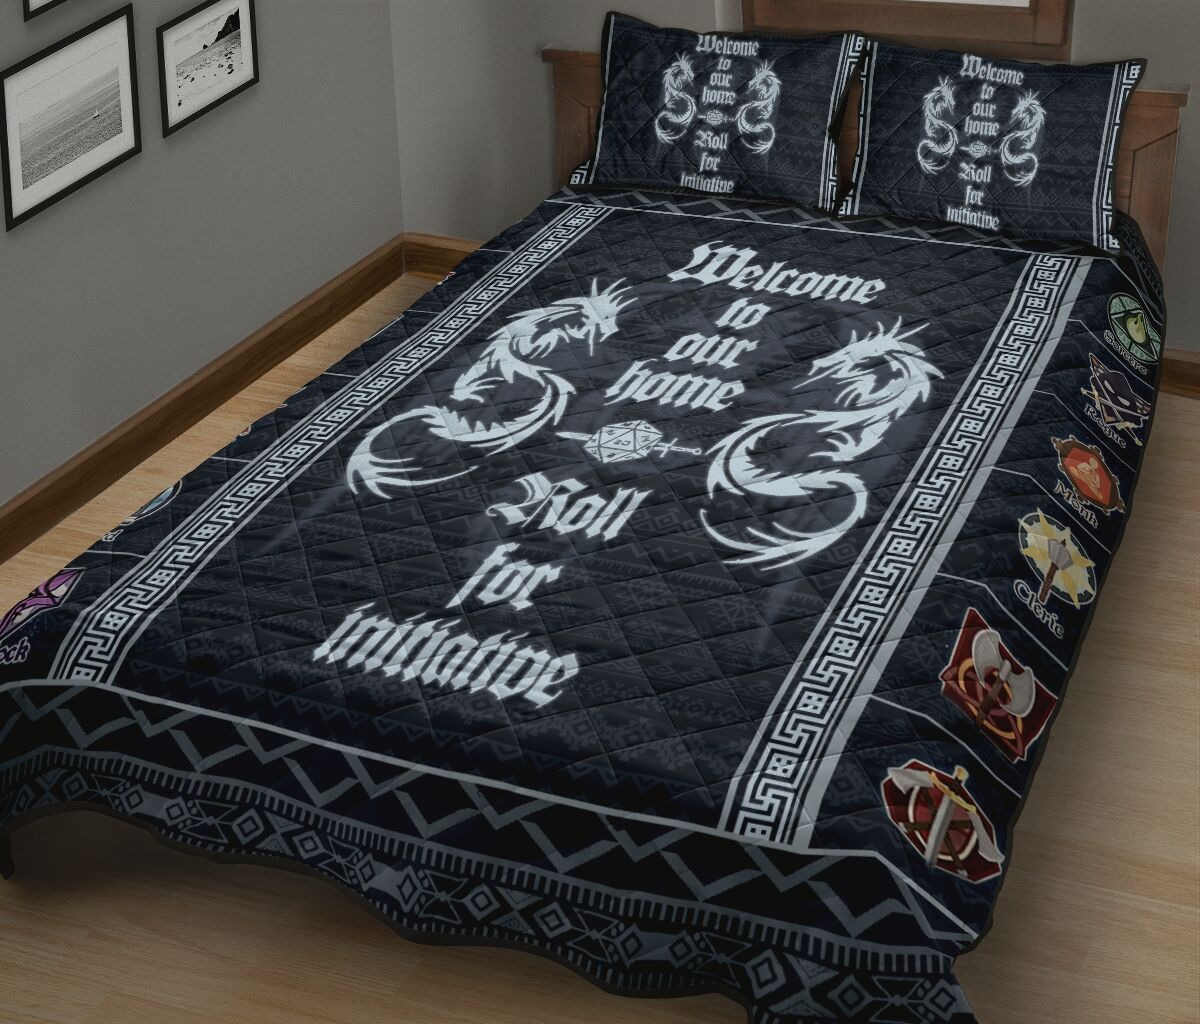 Welcome to out home quilt bedding set